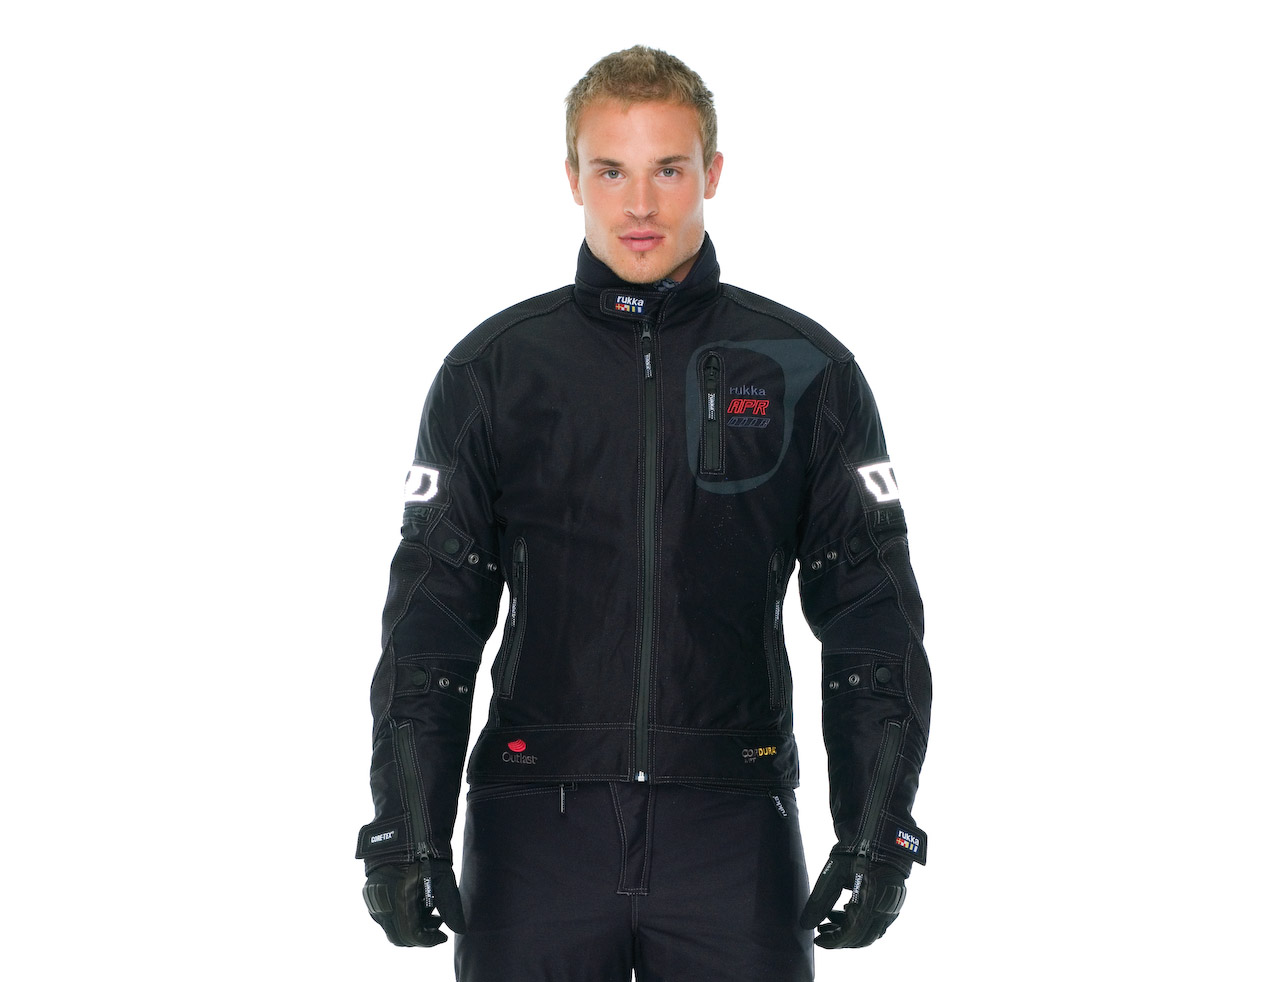 The New Rukka Airob Jacket Dispels Heat Autoevolution